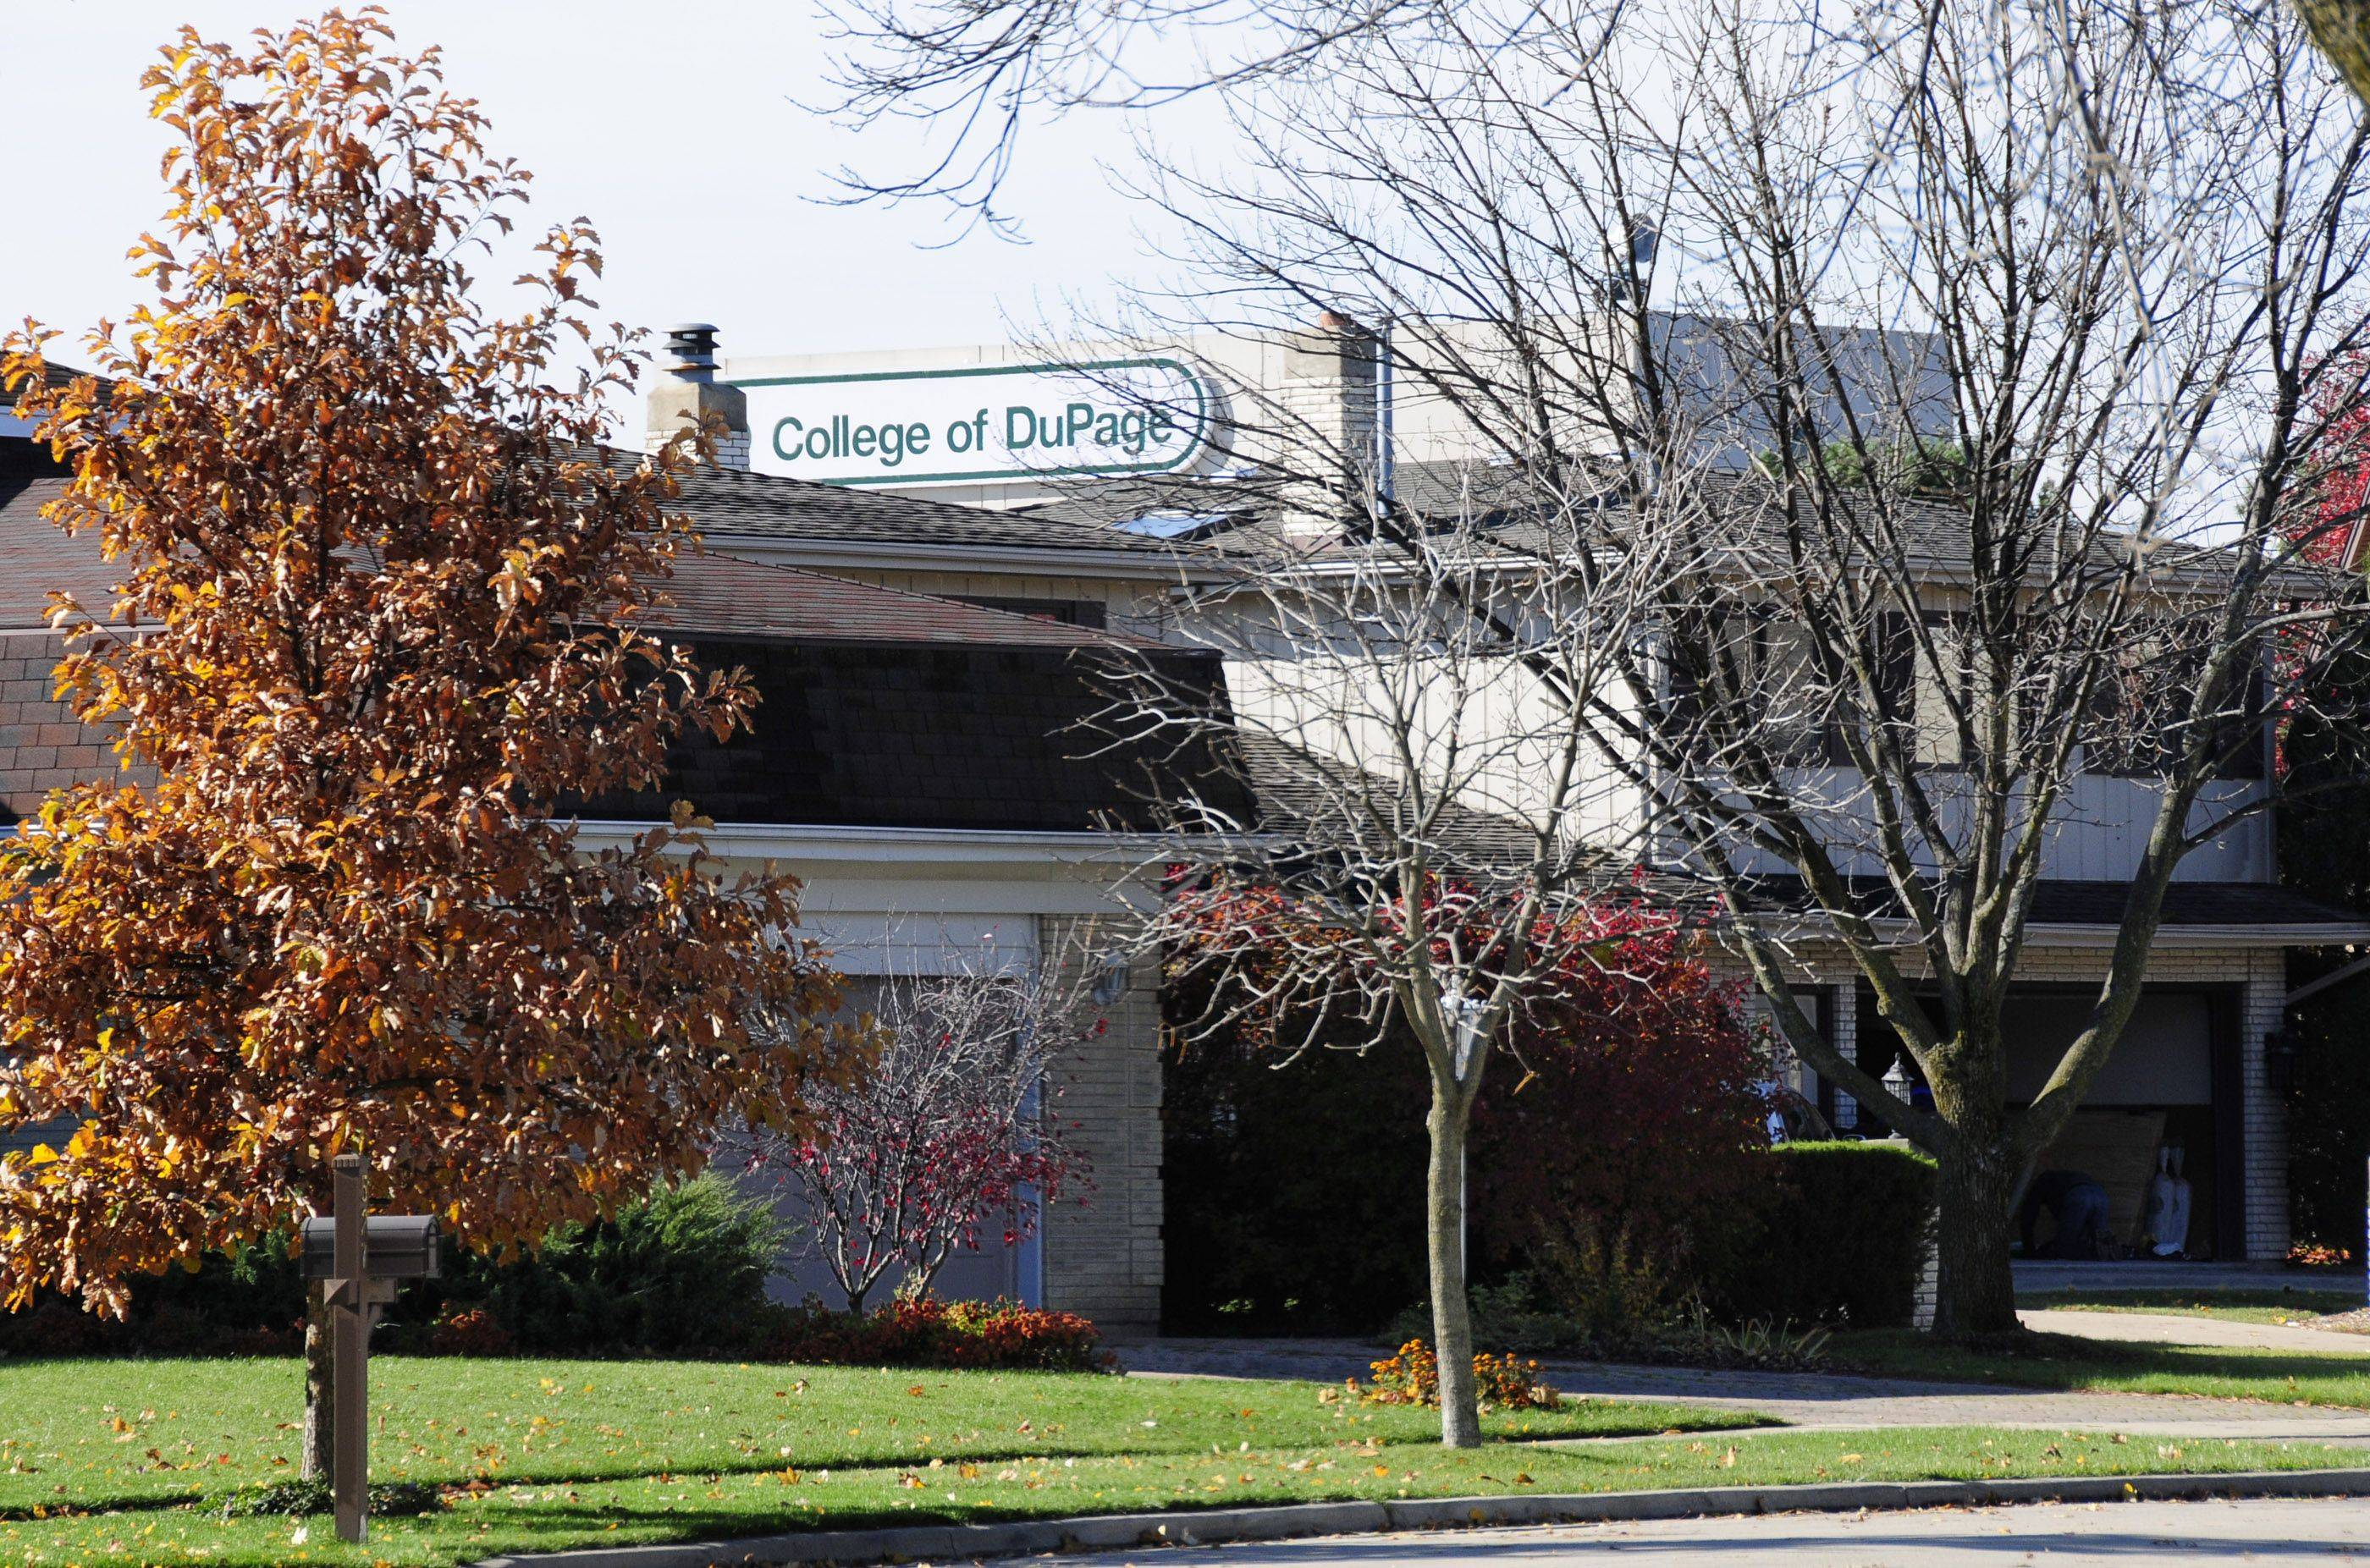 Judge to rule today on battle between Glen Ellyn and College of DuPage